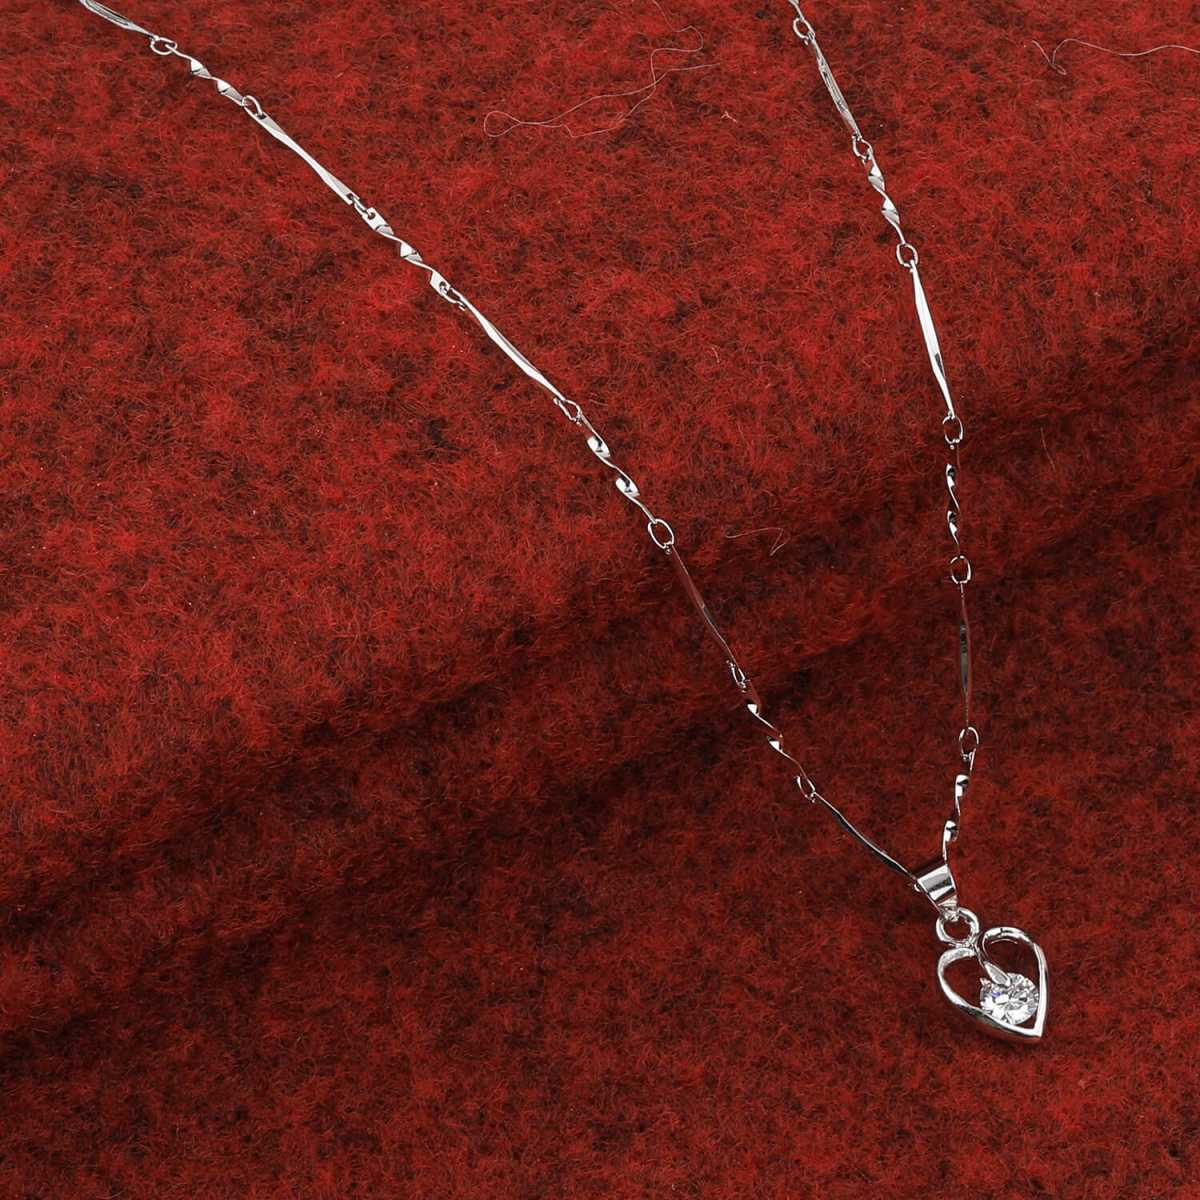 SILVER SHINE  Silver Plated Delicated Chain With Simple Heart Solitaire Diamond Pendant For Women